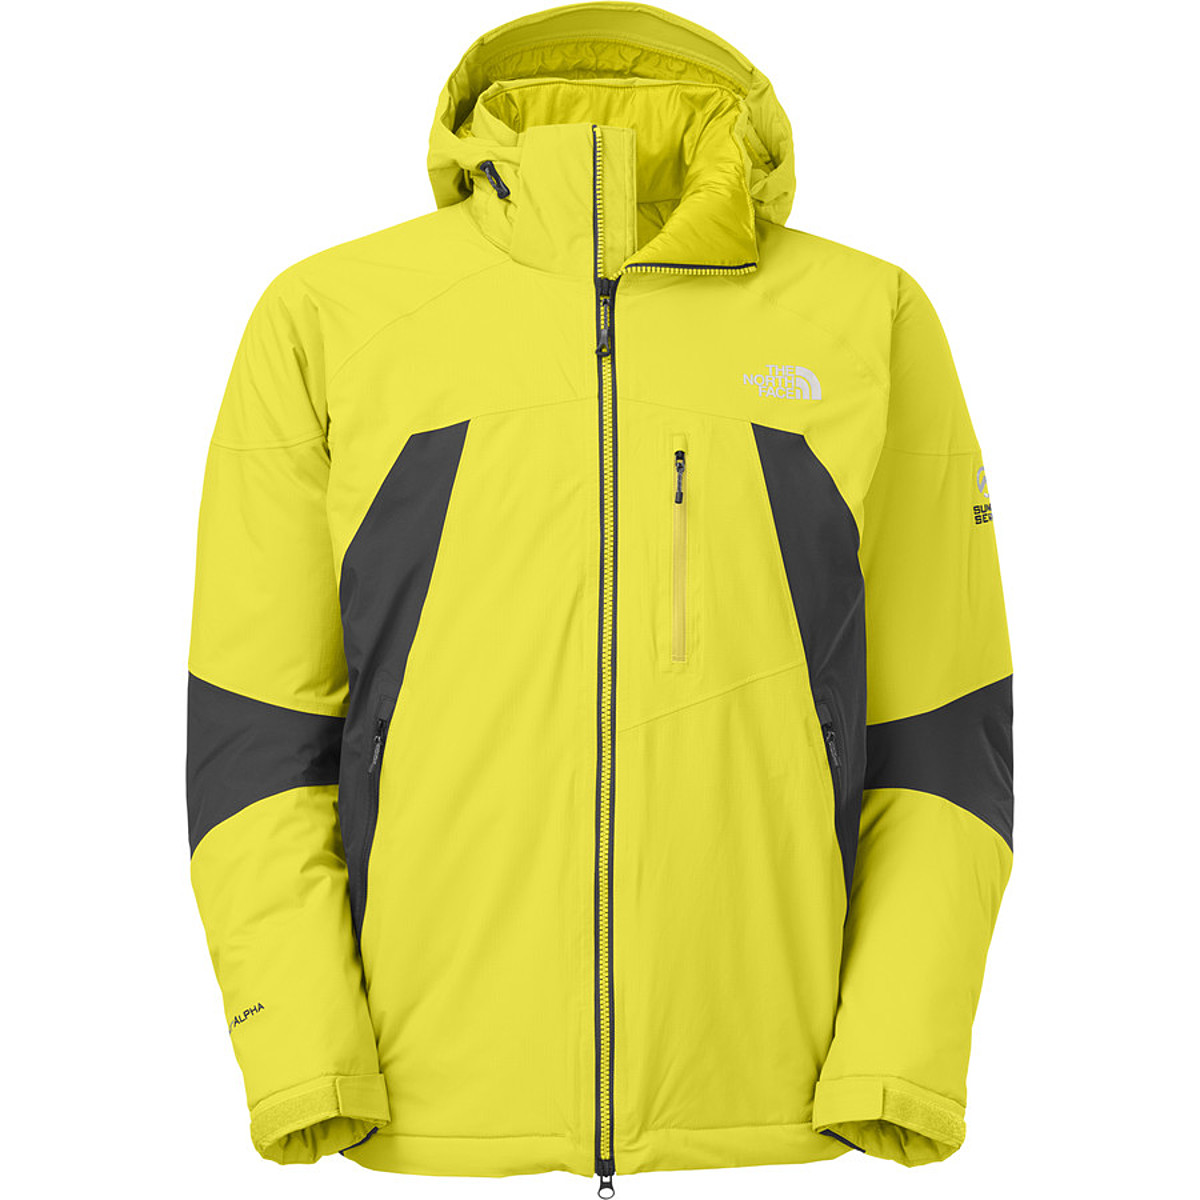 The North Face Plasmatic Jacket